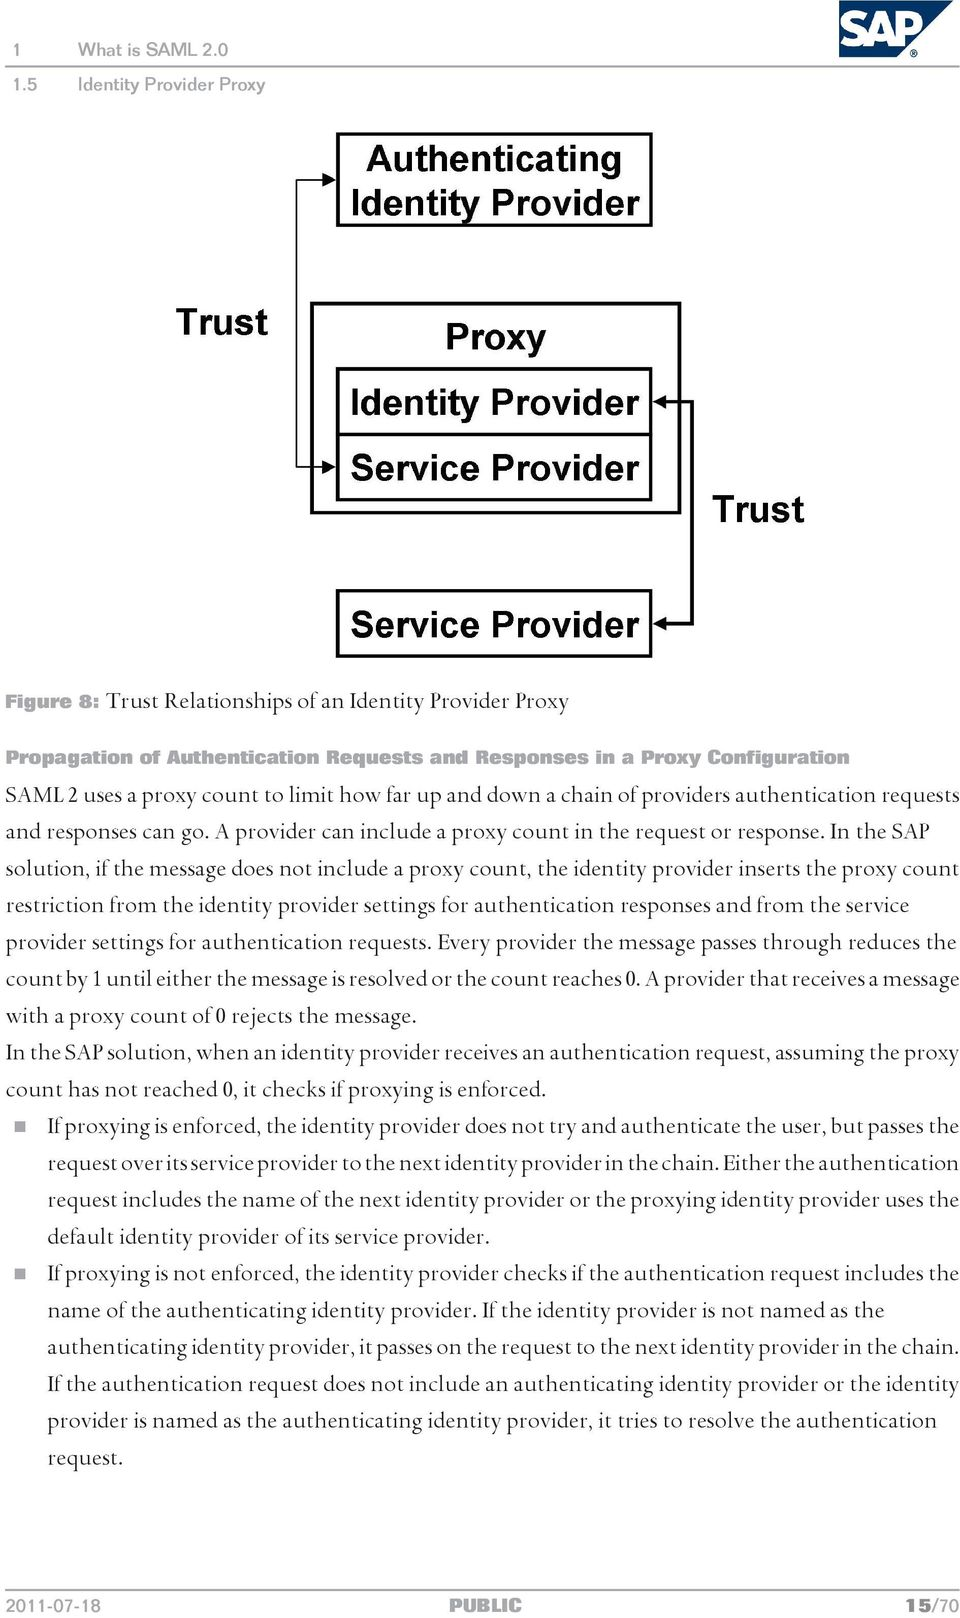 how far up and down a chain of providers authentication requests and responses can go. A provider can include a proxy count in the request or response.